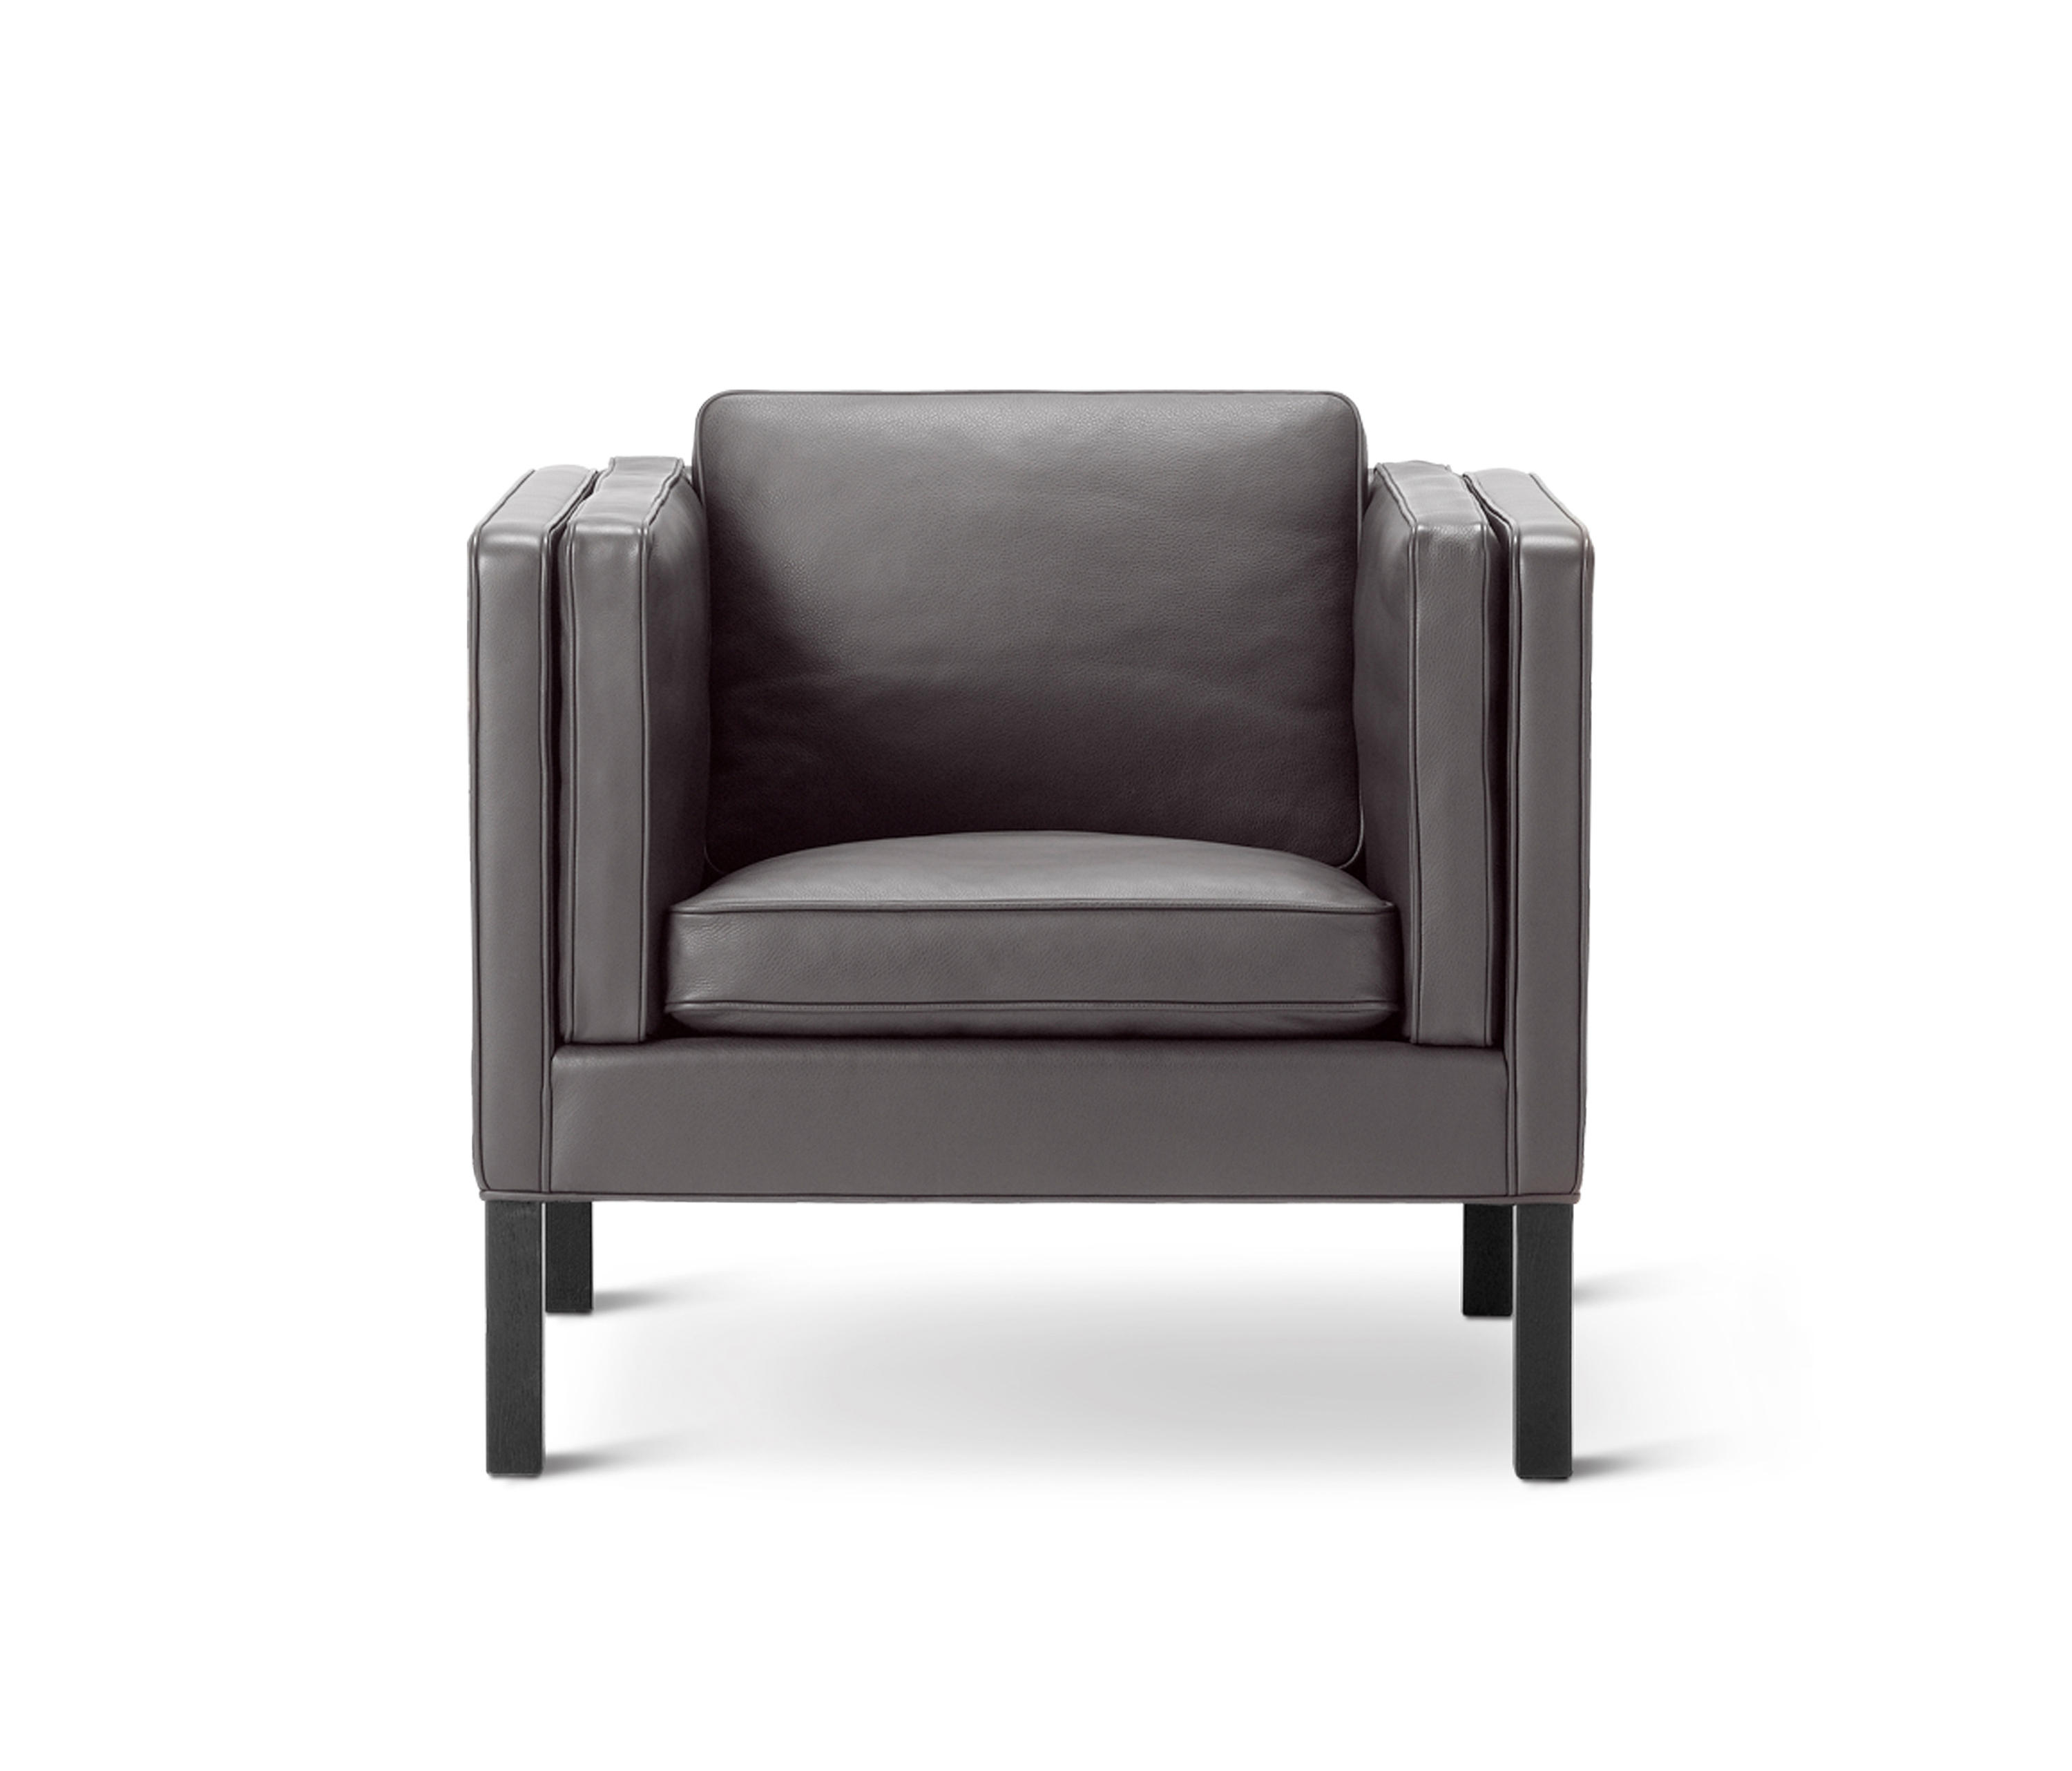 Mogensen Sessel Mogensen 2334 Chair Sessel Von Fredericia Furniture Architonic